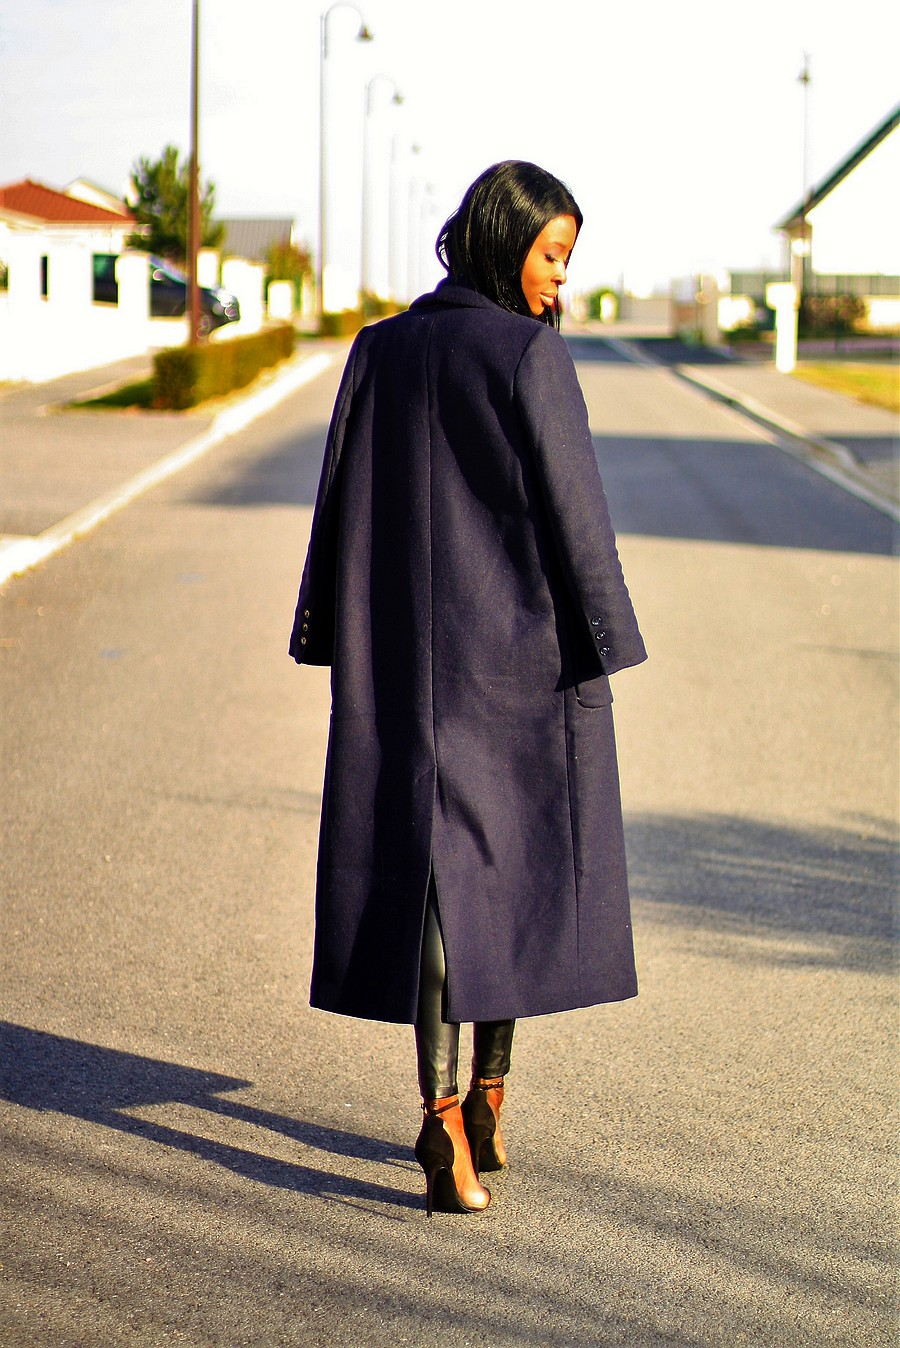 comment-porter-manteau-long